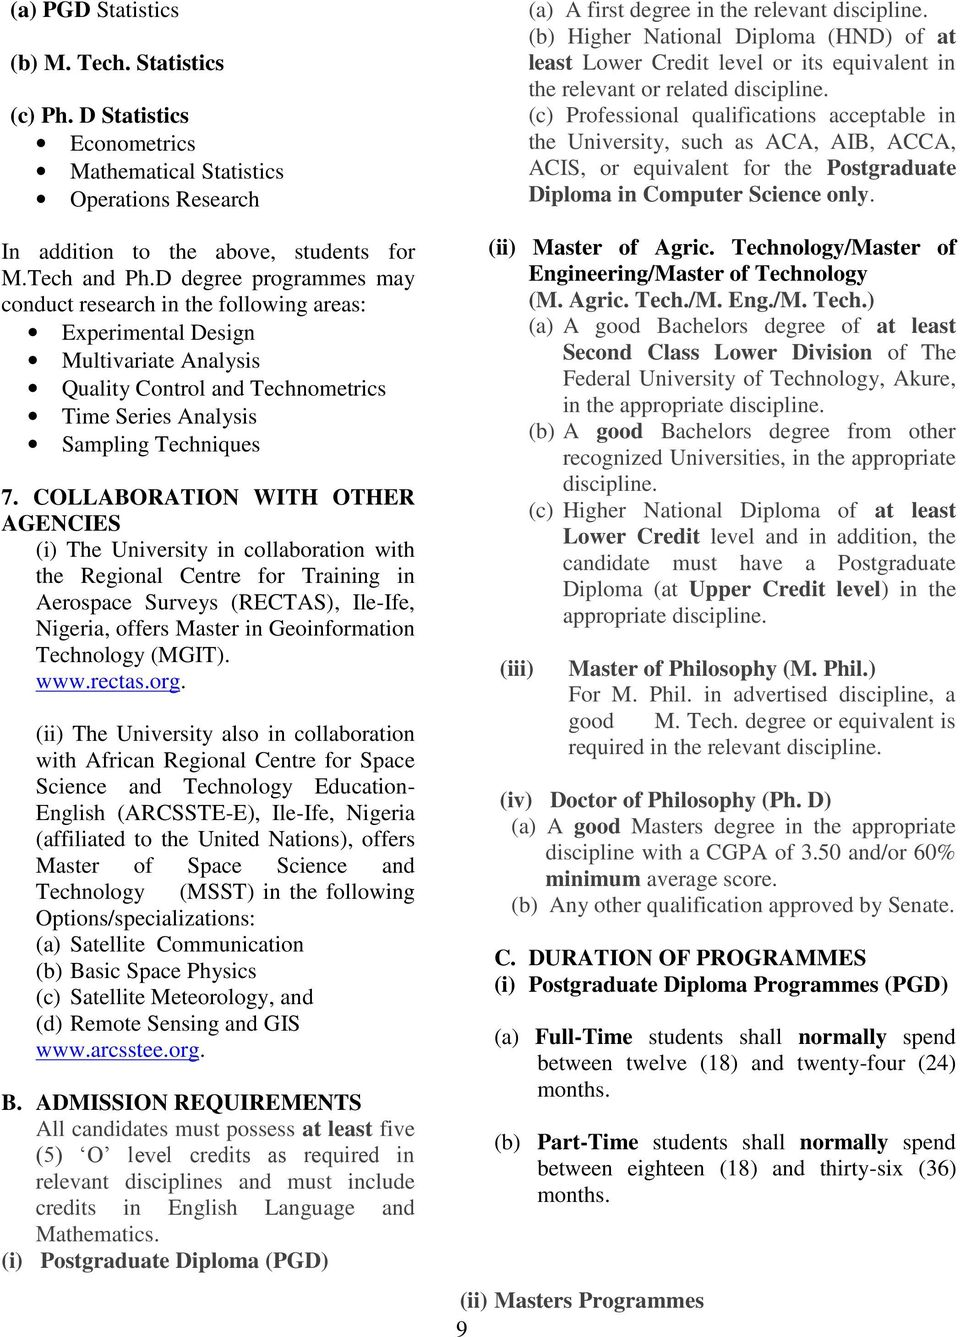 COLLABORATION WITH OTHER AGENCIES (i) The University in collaboration with the Regional Centre for Training in Aerospace Surveys (RECTAS), Ile-Ife, Nigeria, offers Master in Geoinformation (MGIT).